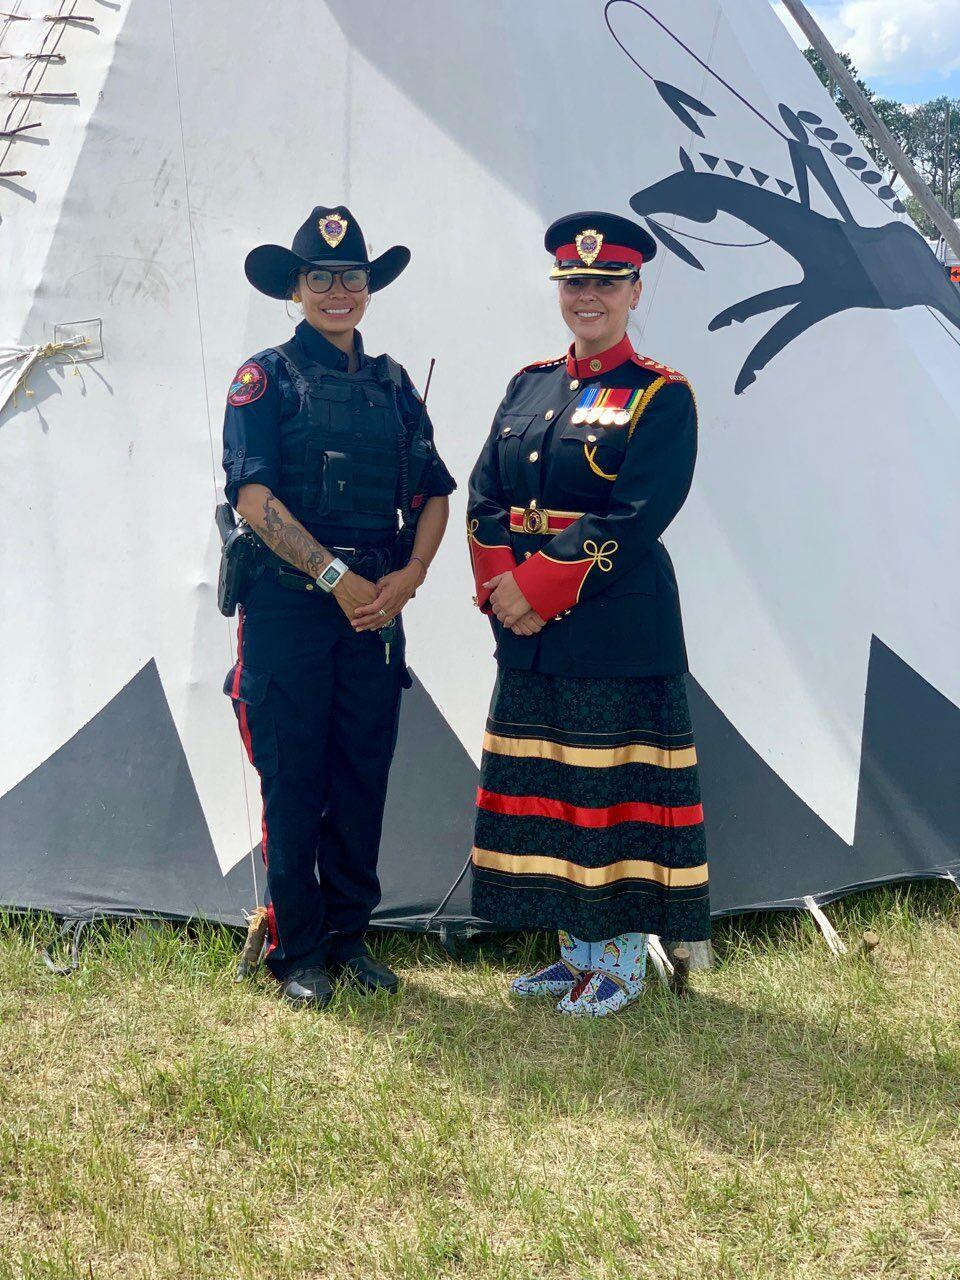 Blood Tribe Police Service inspector Farica Prince has been in policing since 2001. In that time, she has been a constable for two different indigenous police services and was an instructional facilitator for the RCMP. She has seen a lot and is a strong advocate for racial and gender equality within Canadian policing circles.